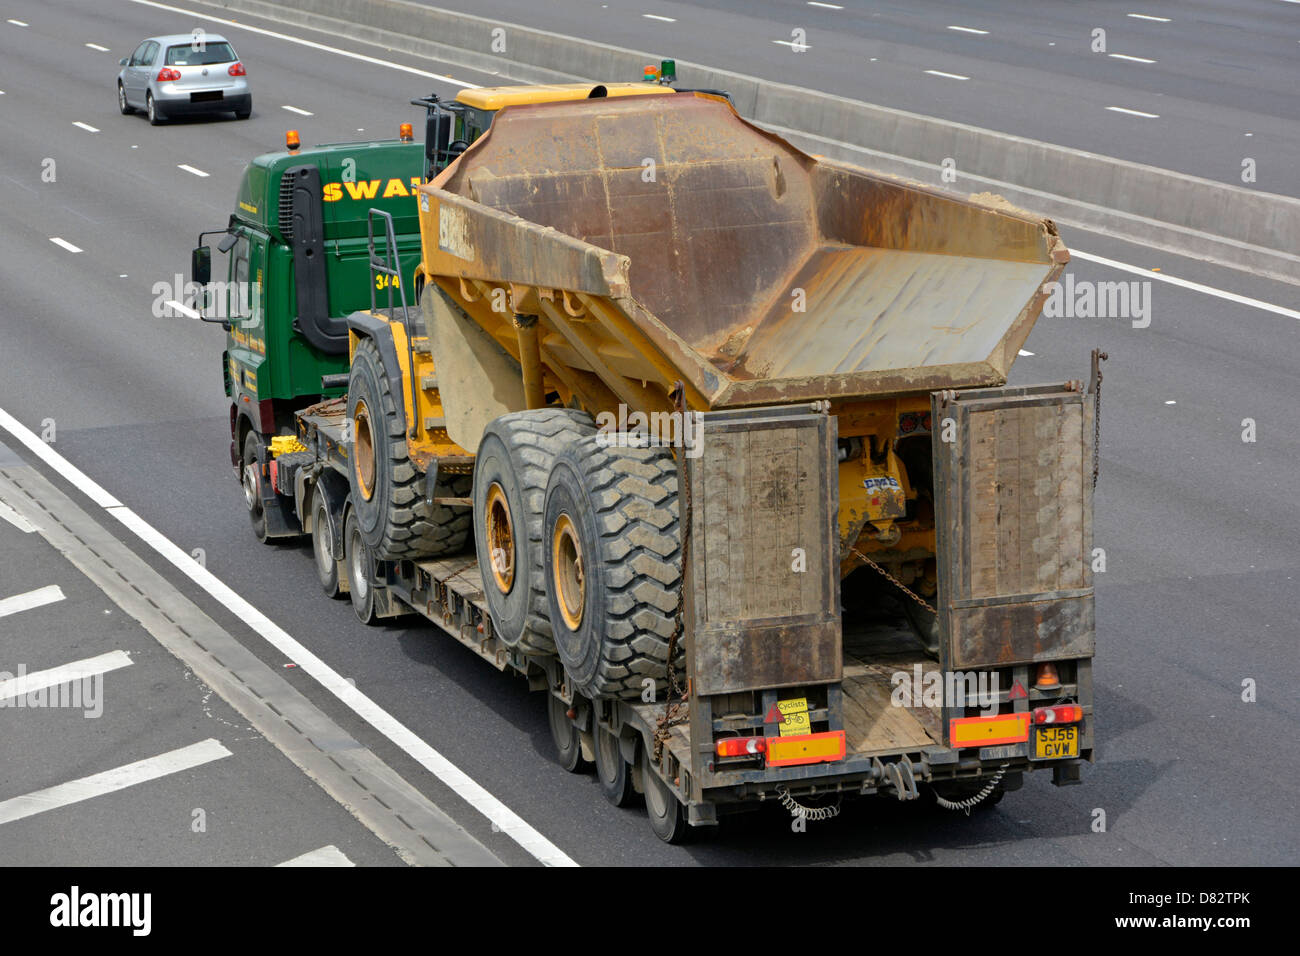 Modulhaus Holland Low Loader Lorry Stockfotos And Low Loader Lorry Bilder Alamy